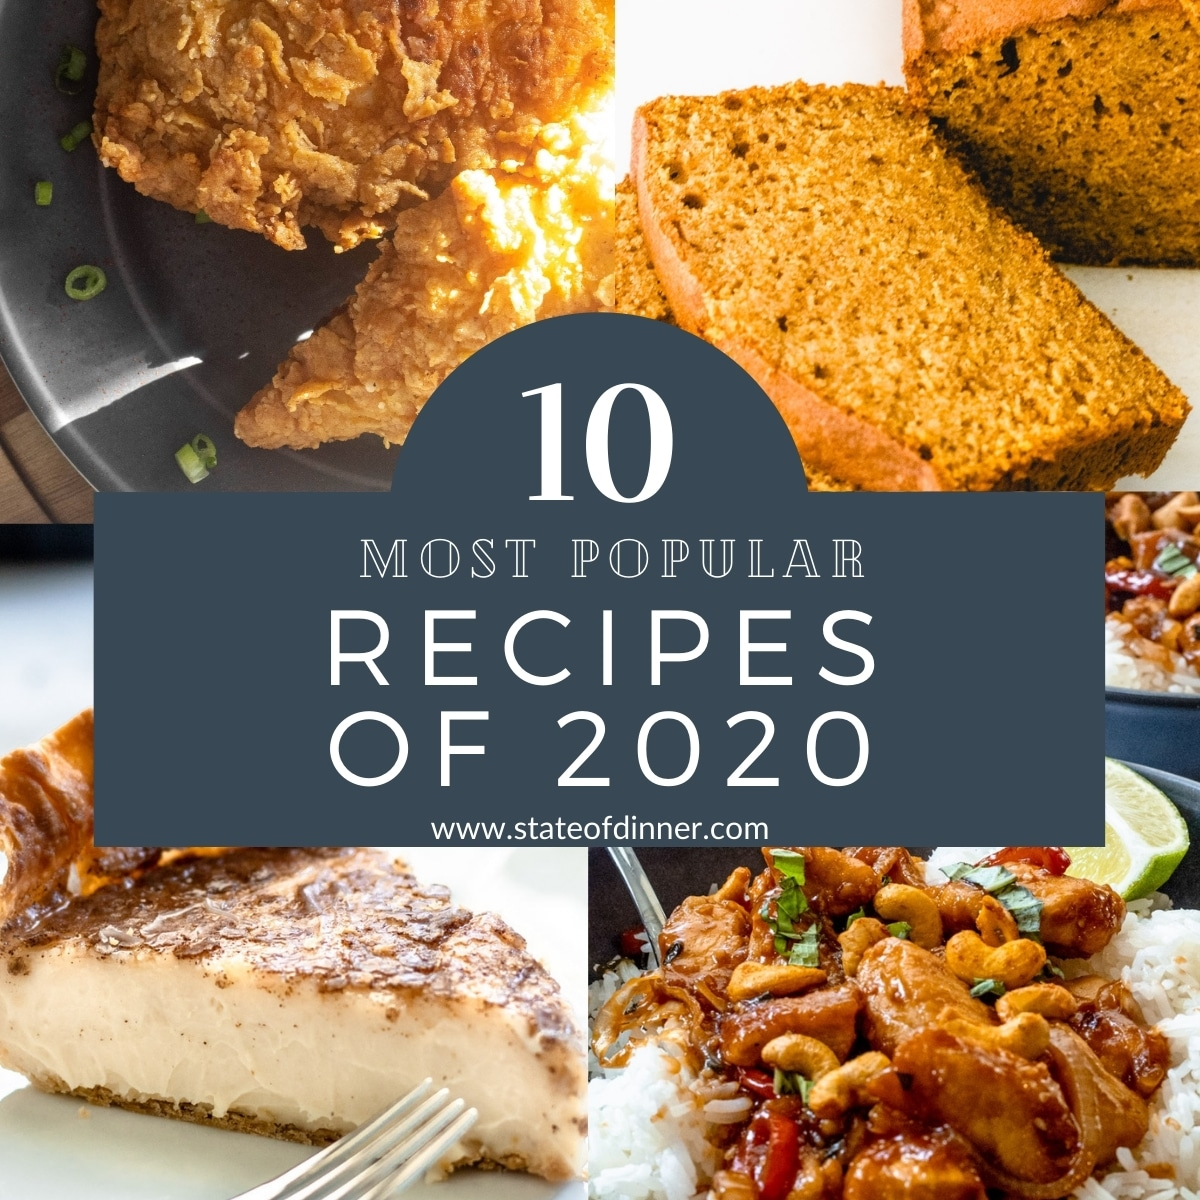 10 most popular recipes of 2020: images of fried chicken, pumpkin bread, sugar cream pie, and thai cashew chicken.